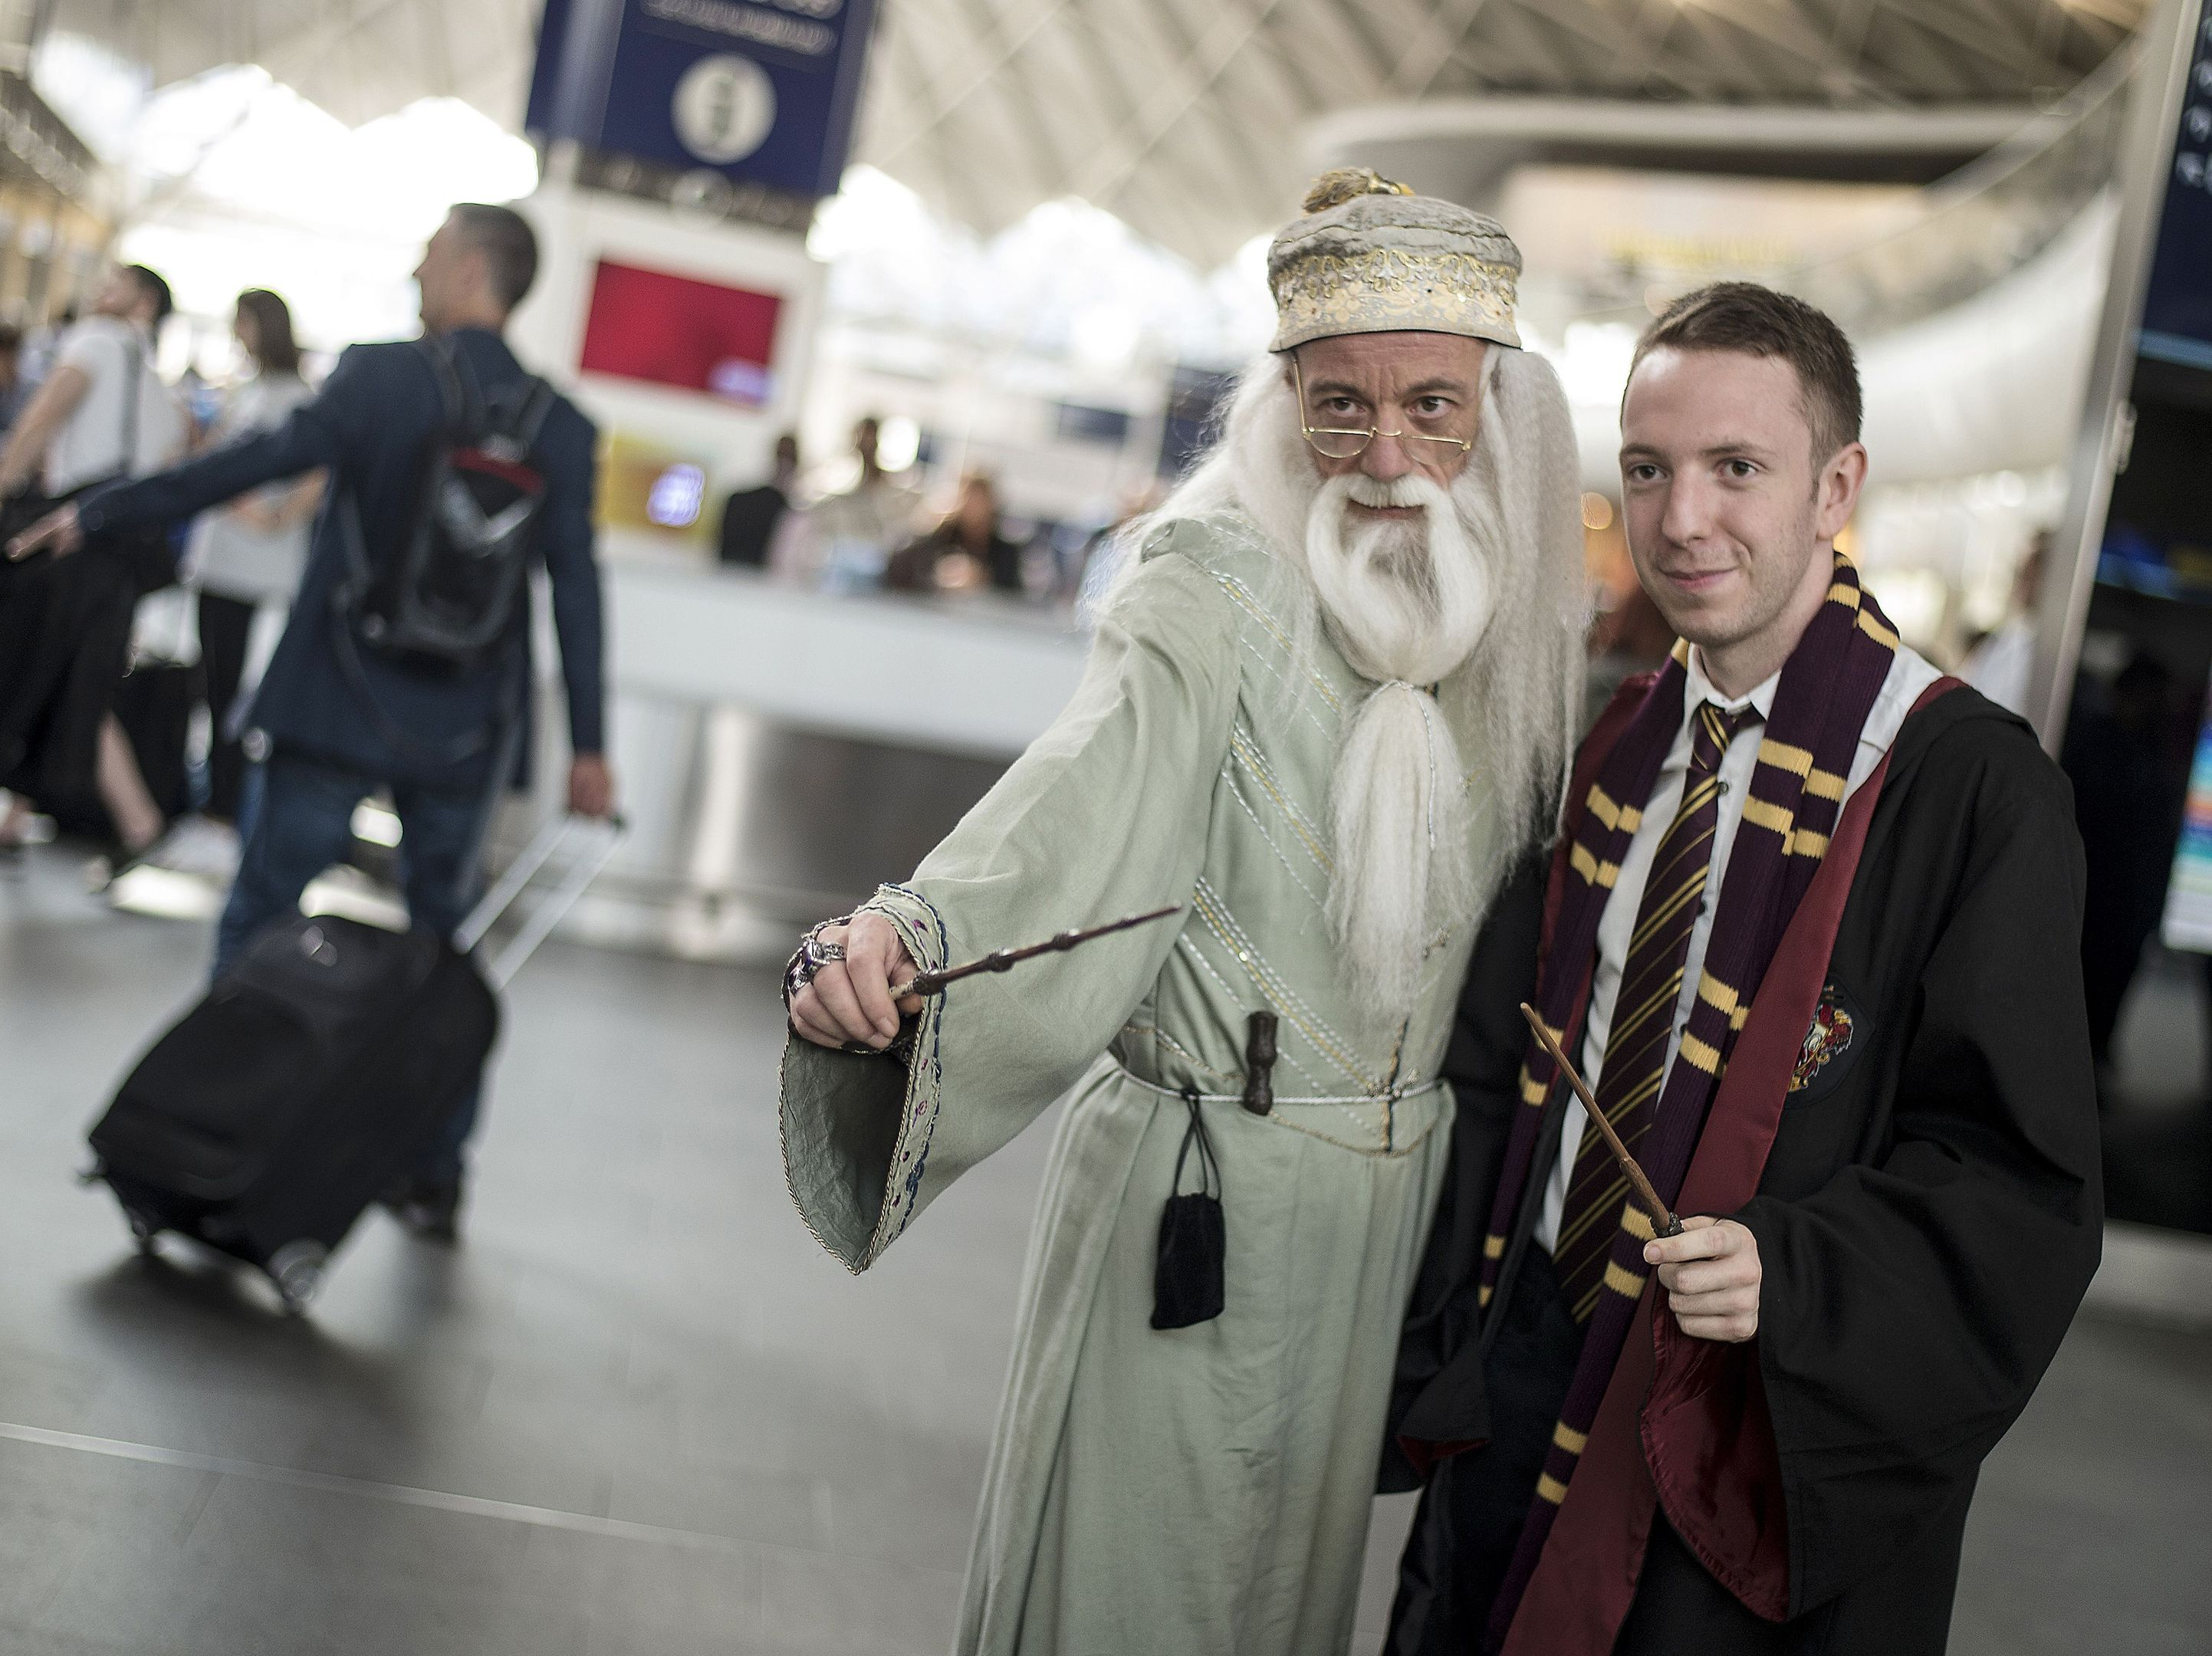 Harry Potter fans at King's Cross Station, London.